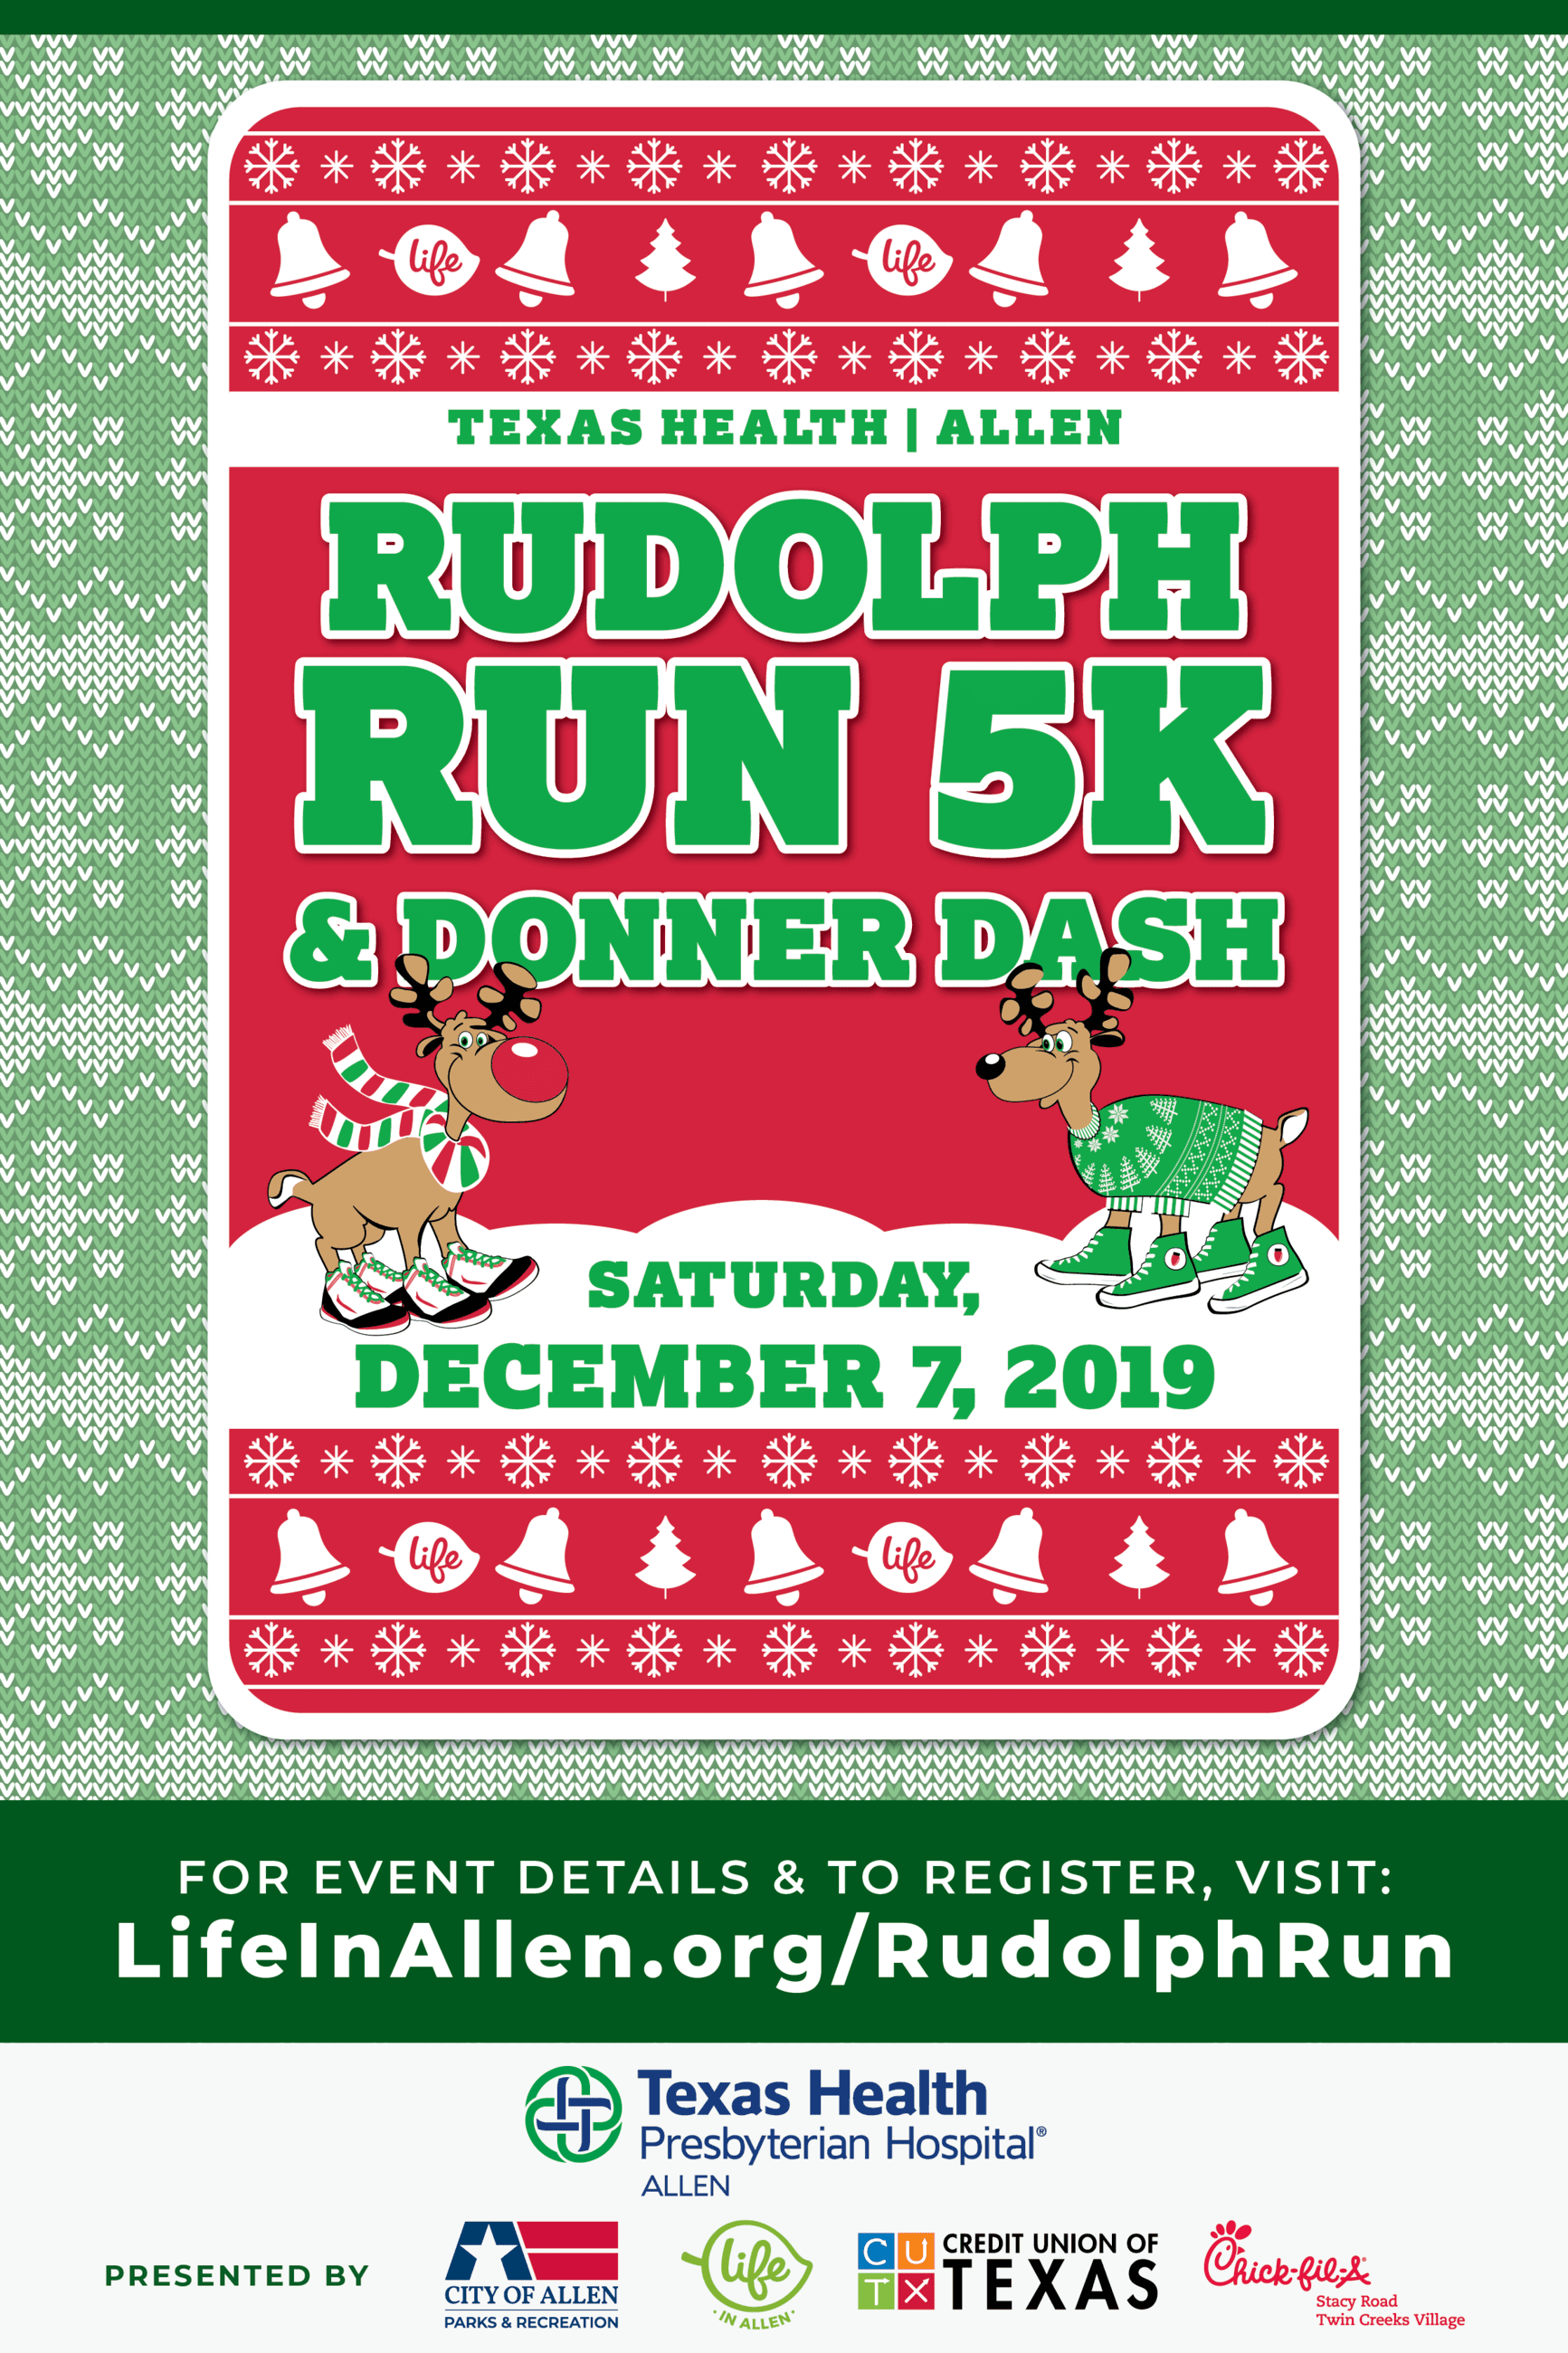 2019 Rudolph Run and Donner Dash